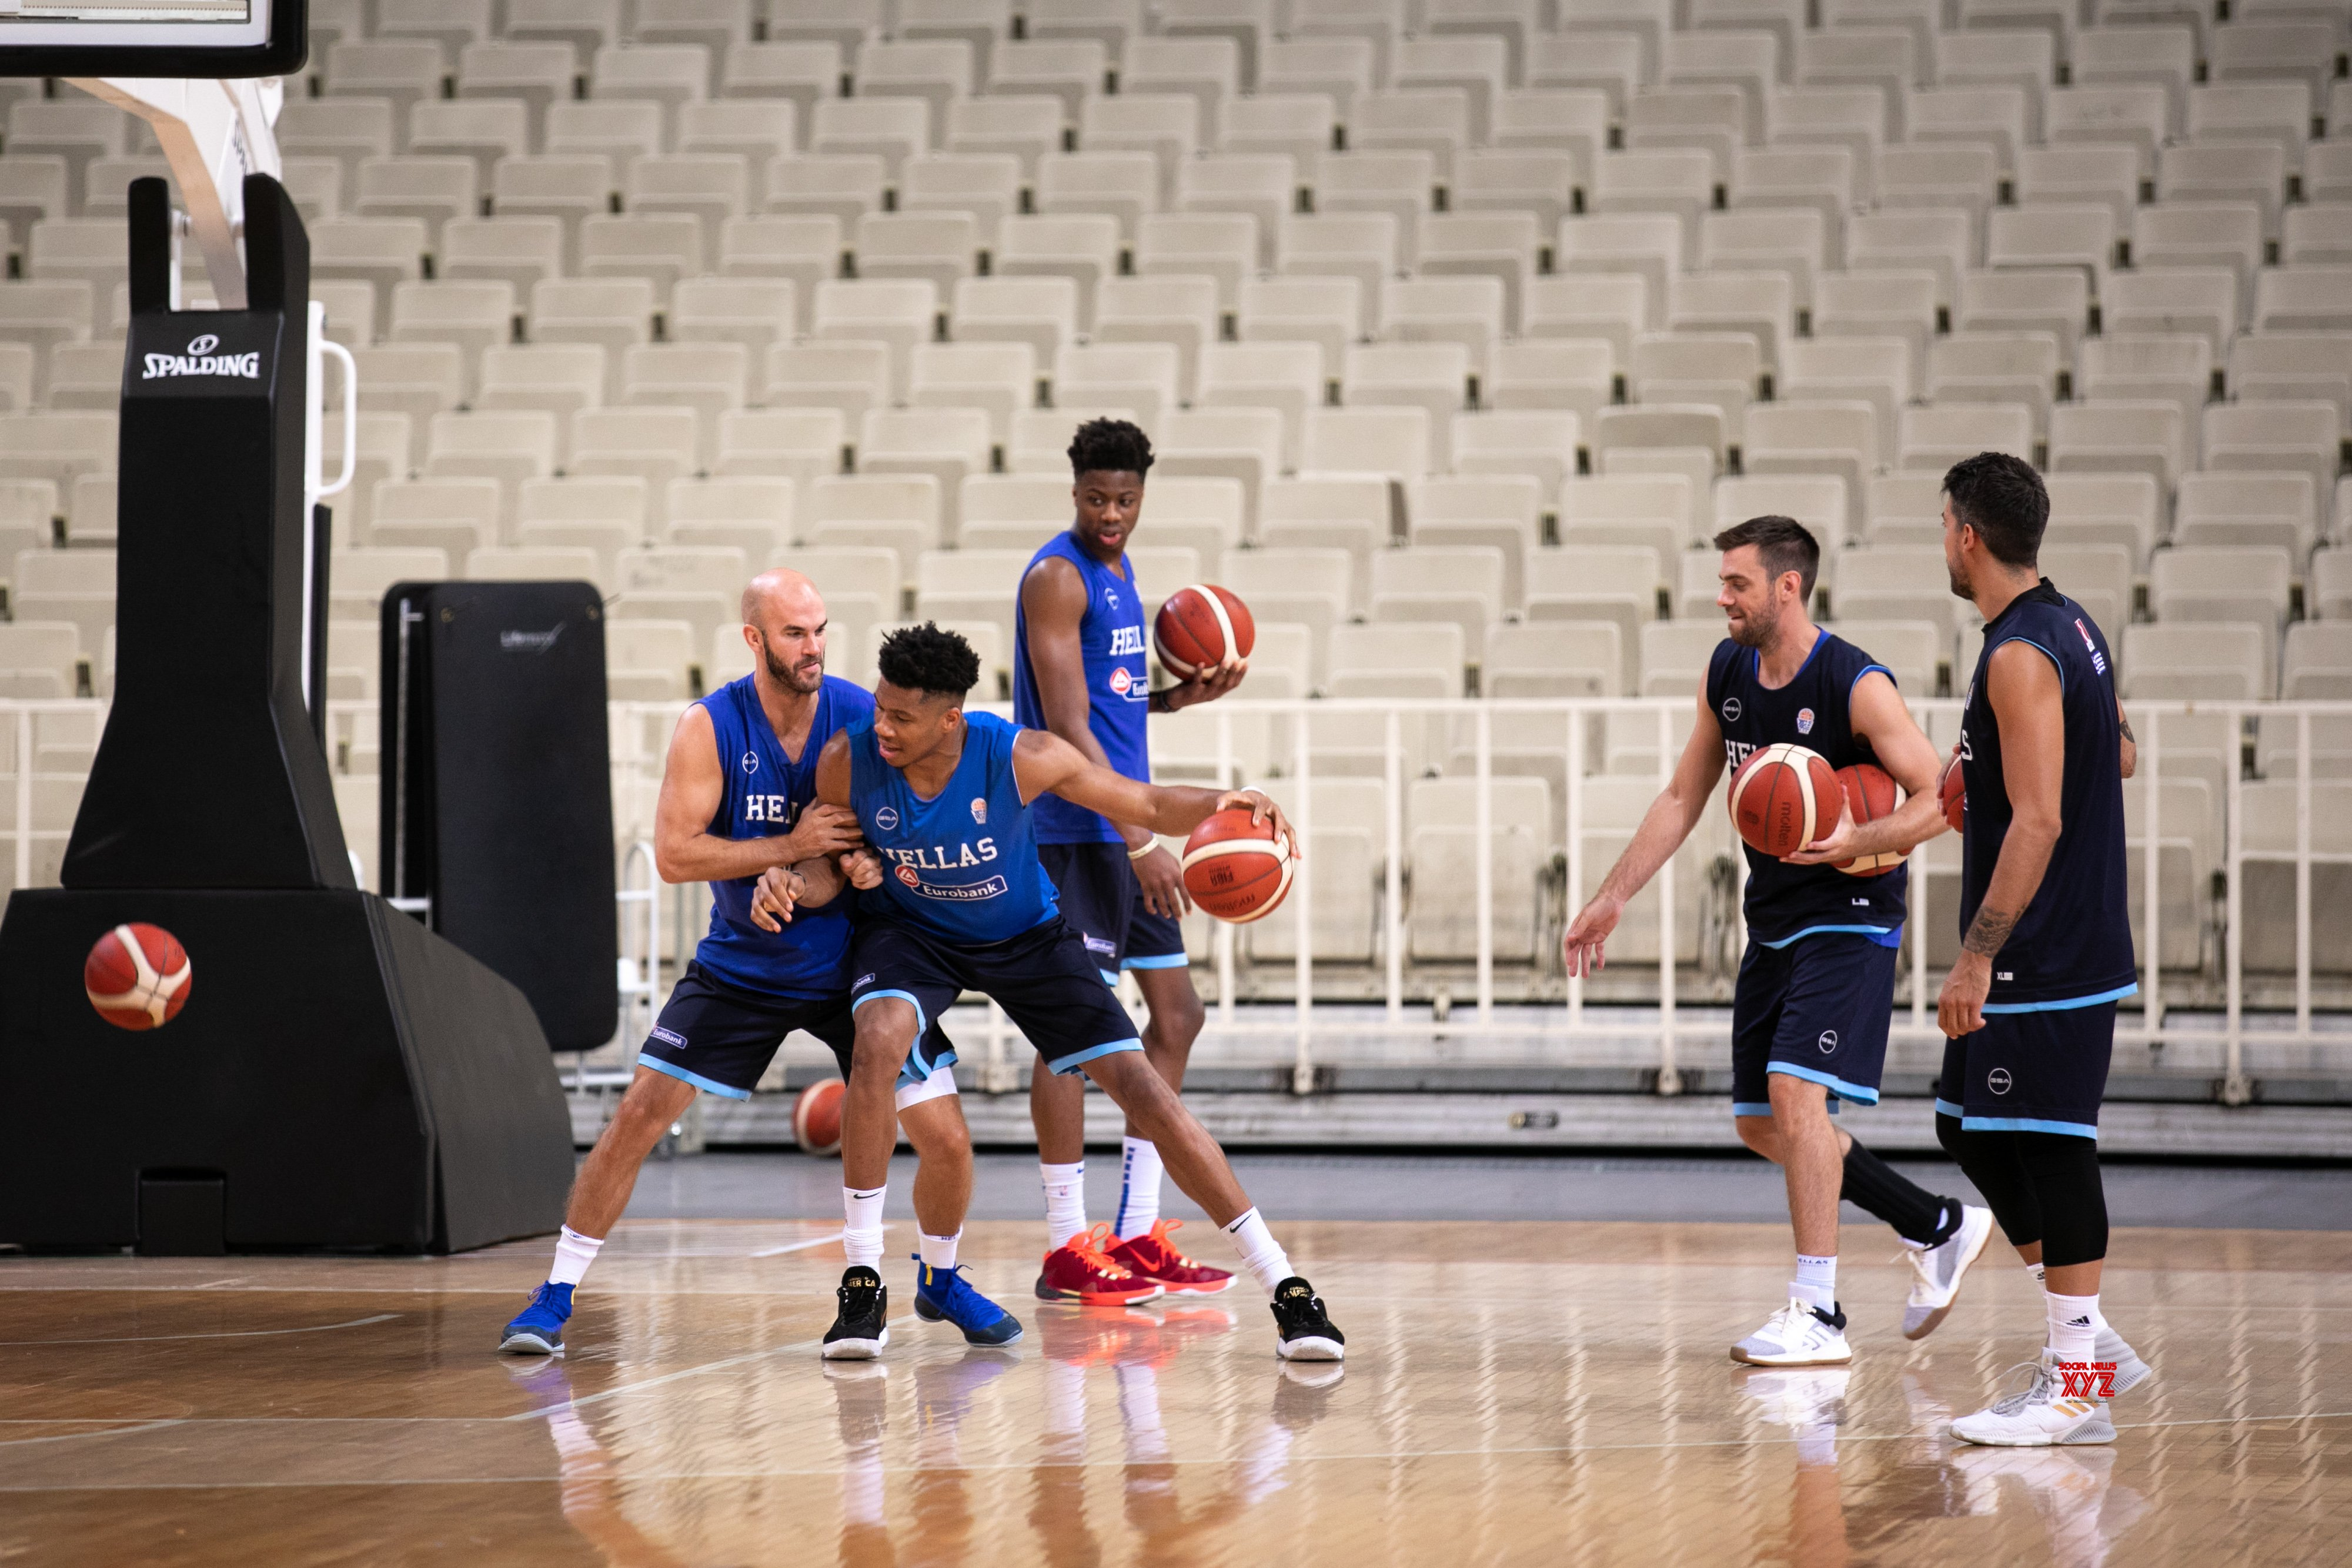 sports shoes 126f8 6a87d GREECE - ATHENS - GREEK NATIONAL BASKETBALL TEAM - TRAINING ...